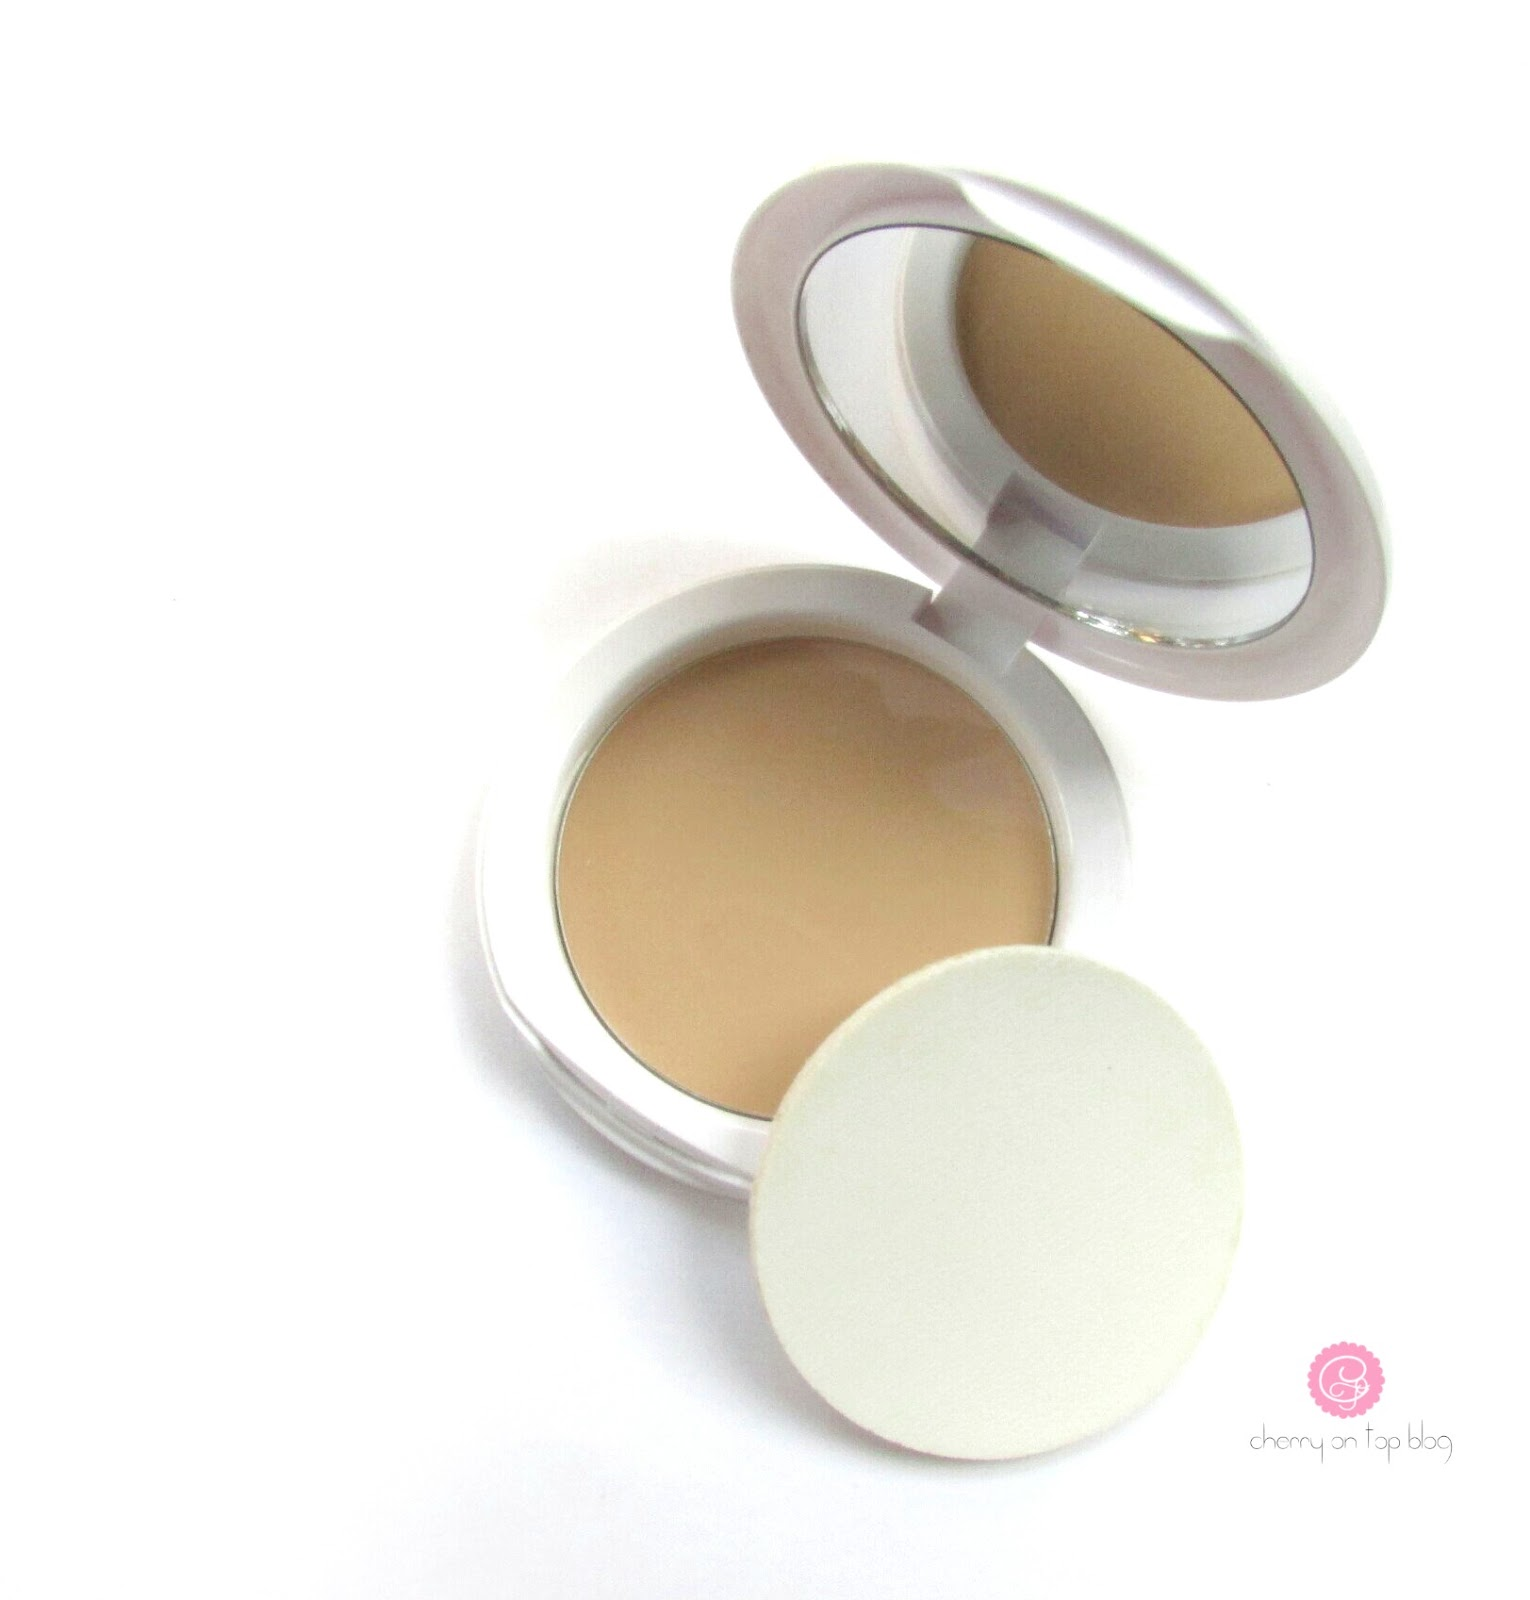 Maybelline White Superfresh 12hr Whitening+Perfecting Compact  Review, Swatch, Price